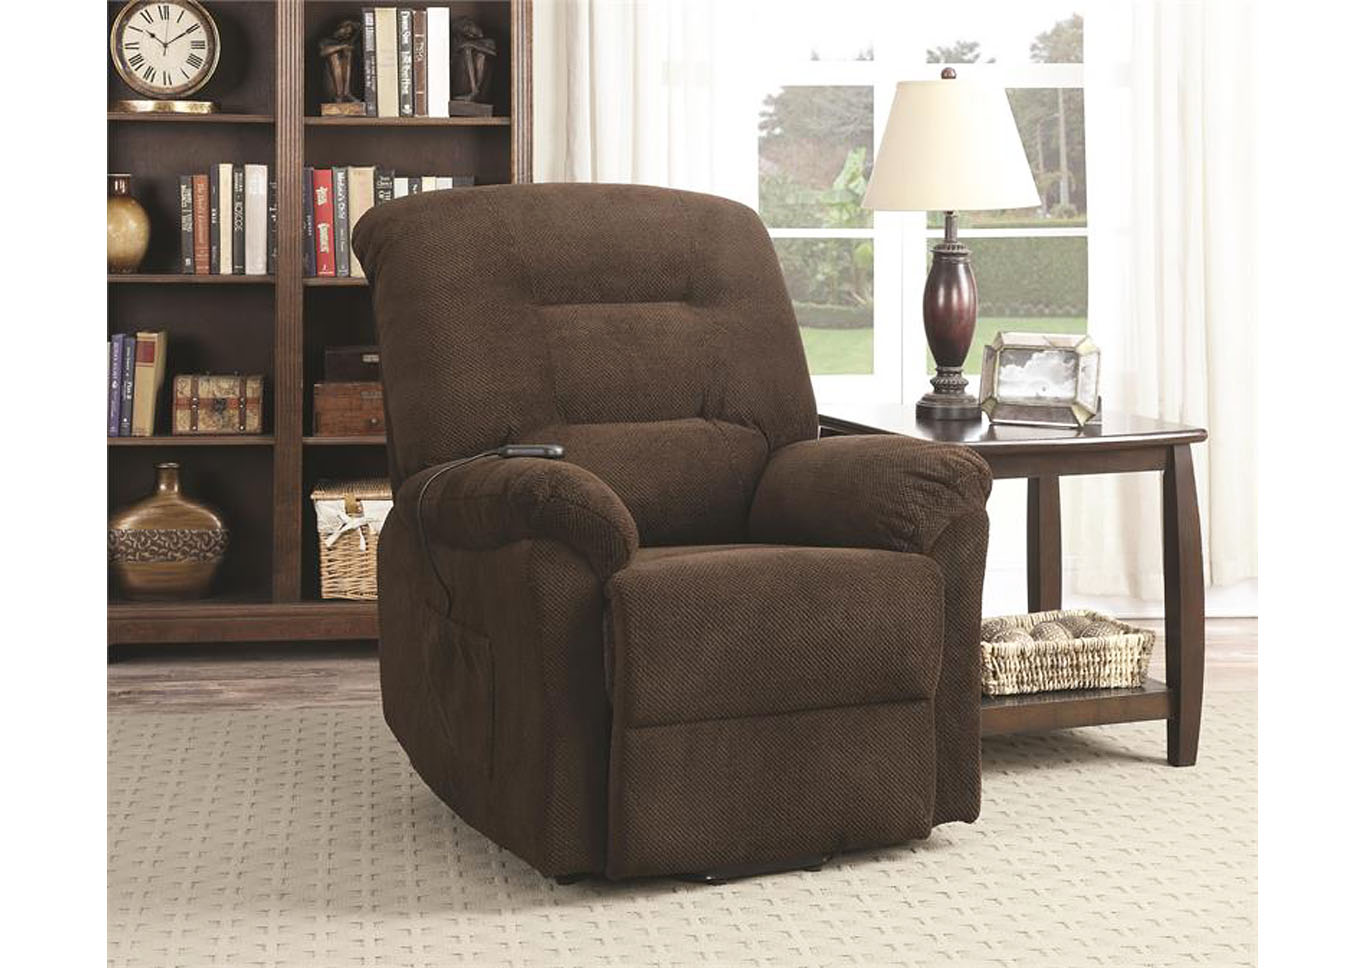 Maverick Power Lift Reclining Chair - Chocolate,Instore